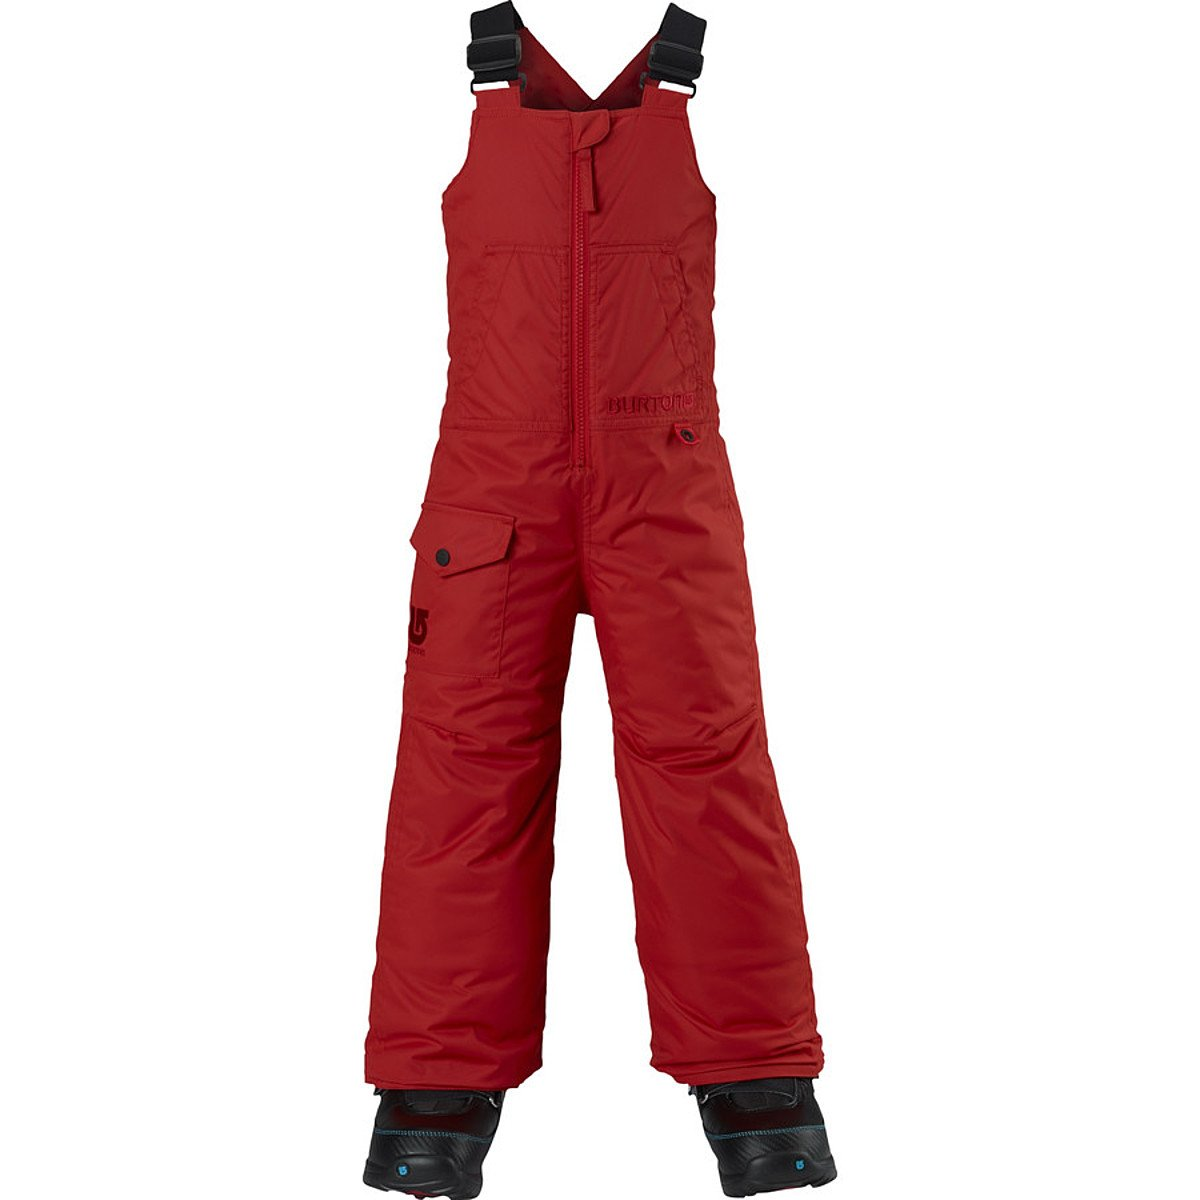 Burton Minishred Maven Insulated Bib Pant - Toddler Boys' Fang, 3T by Burton